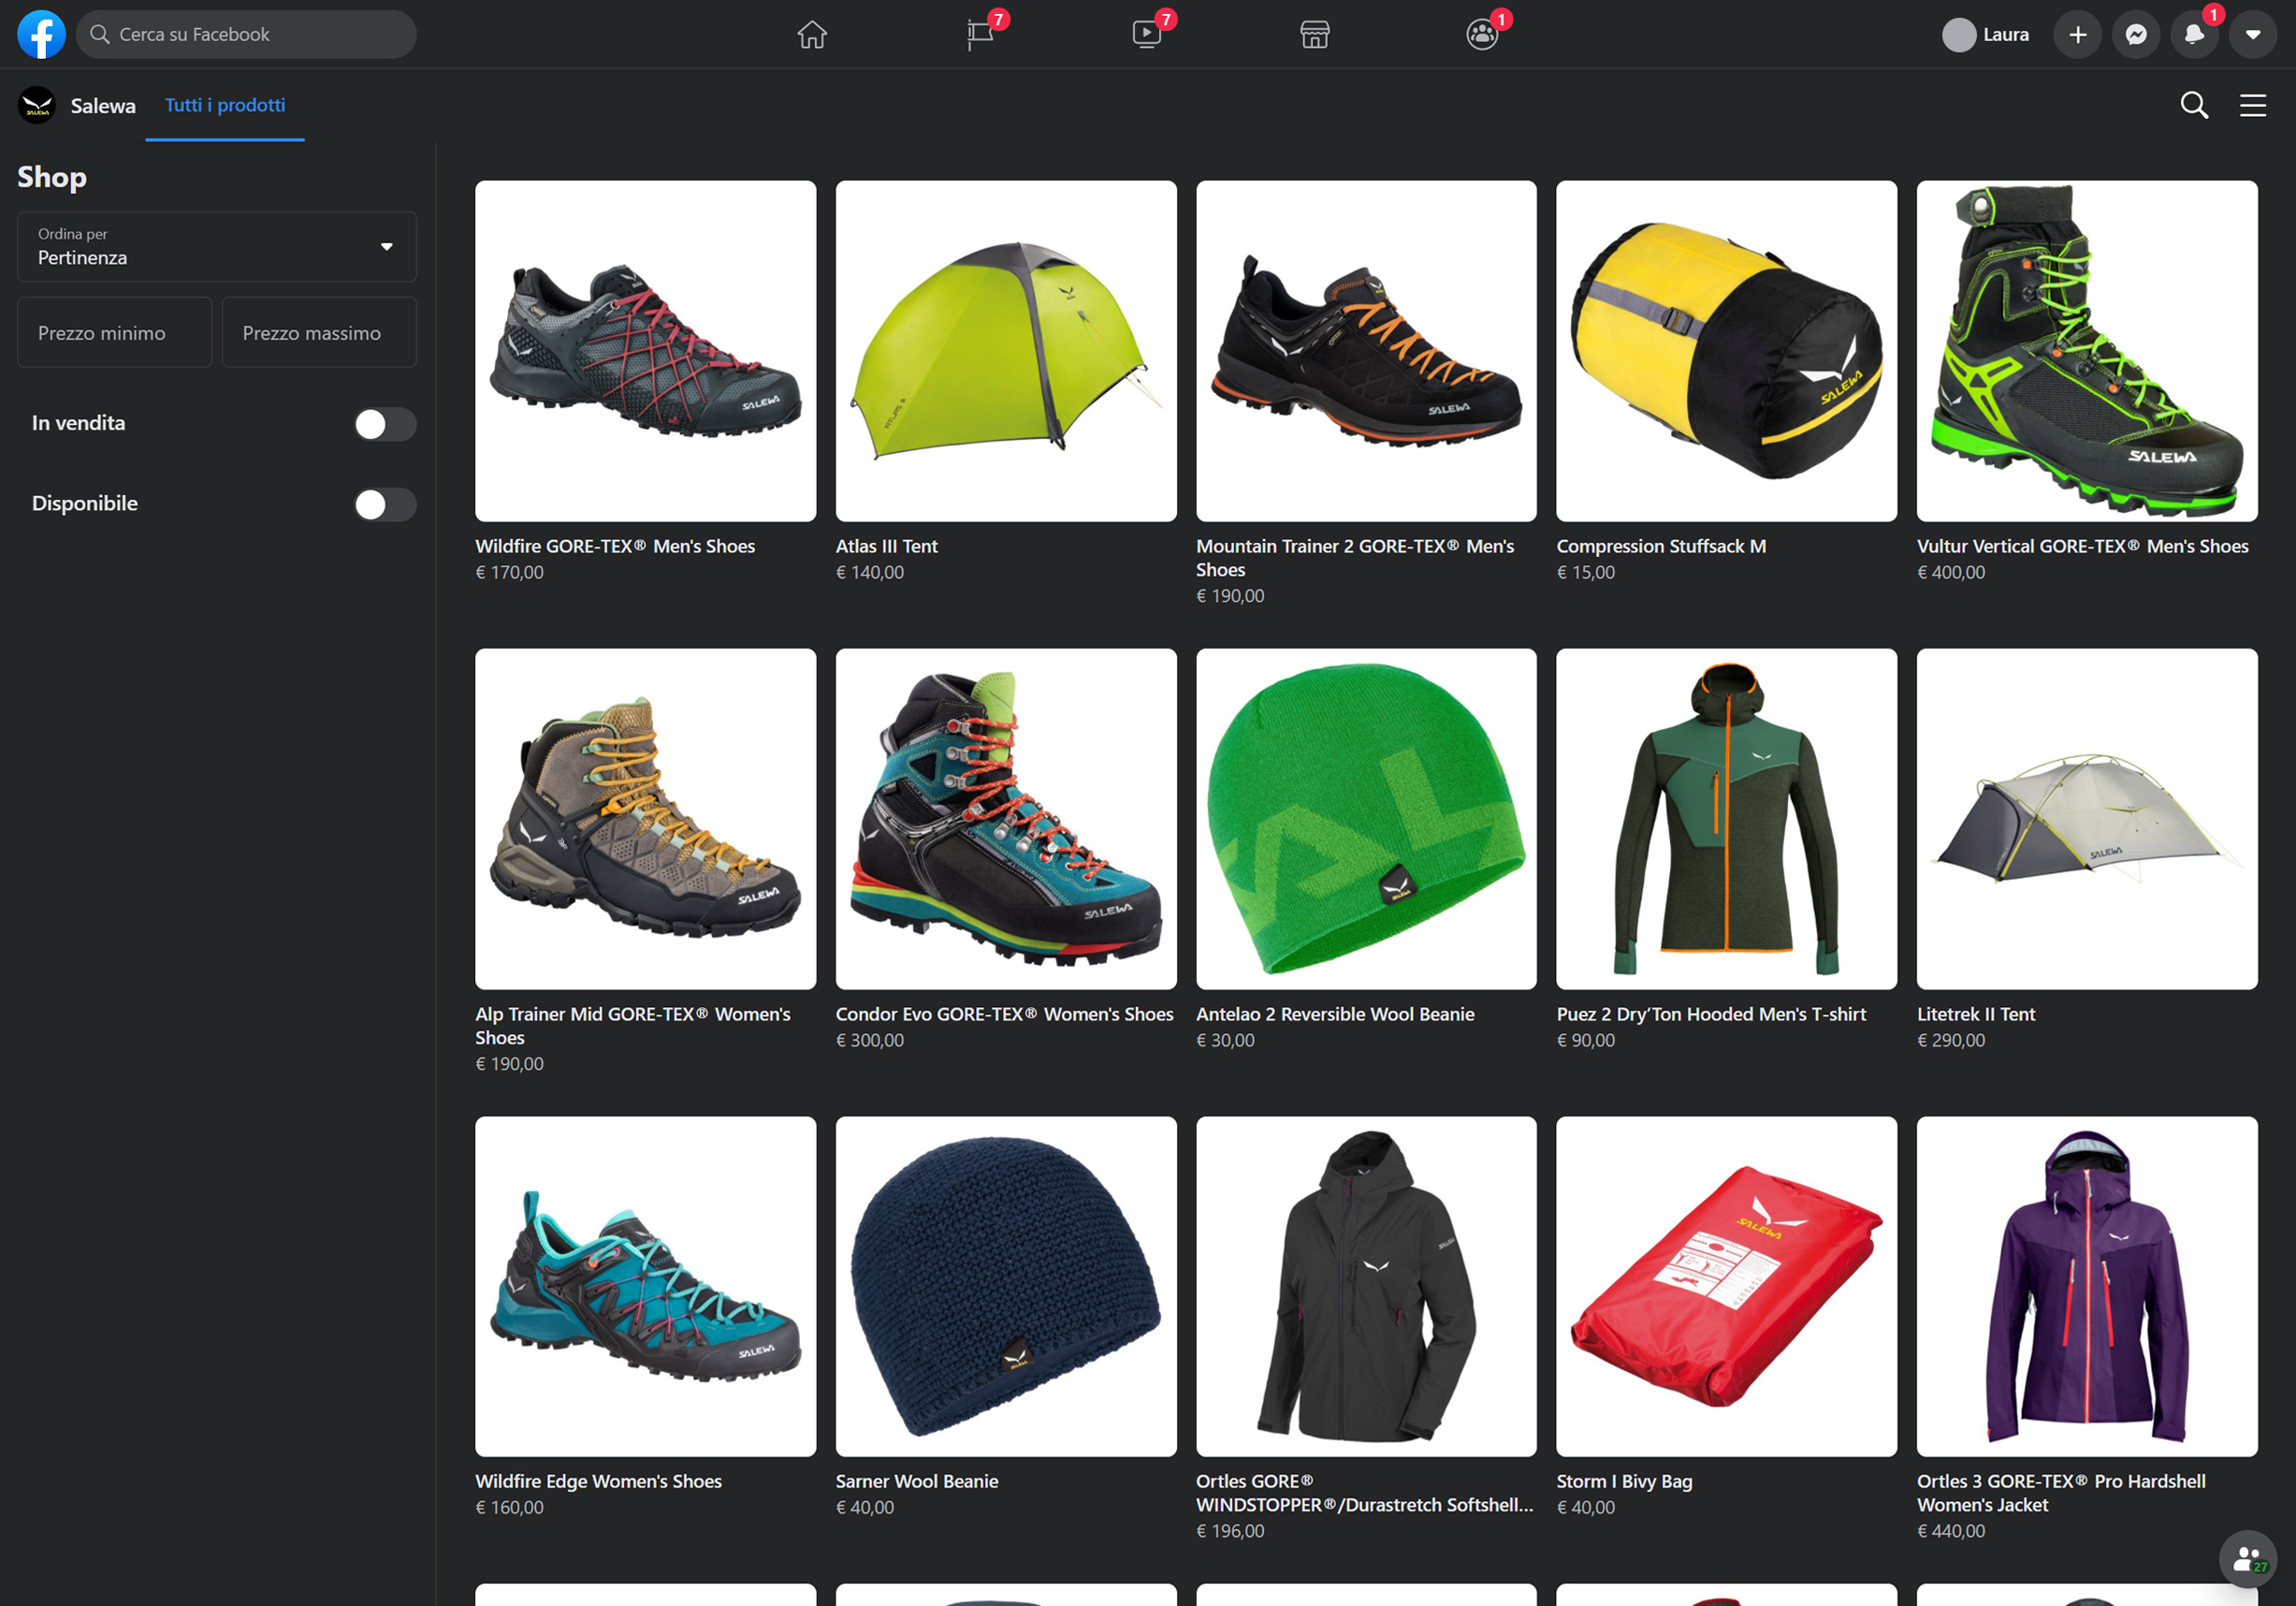 facebook shop salewa 2